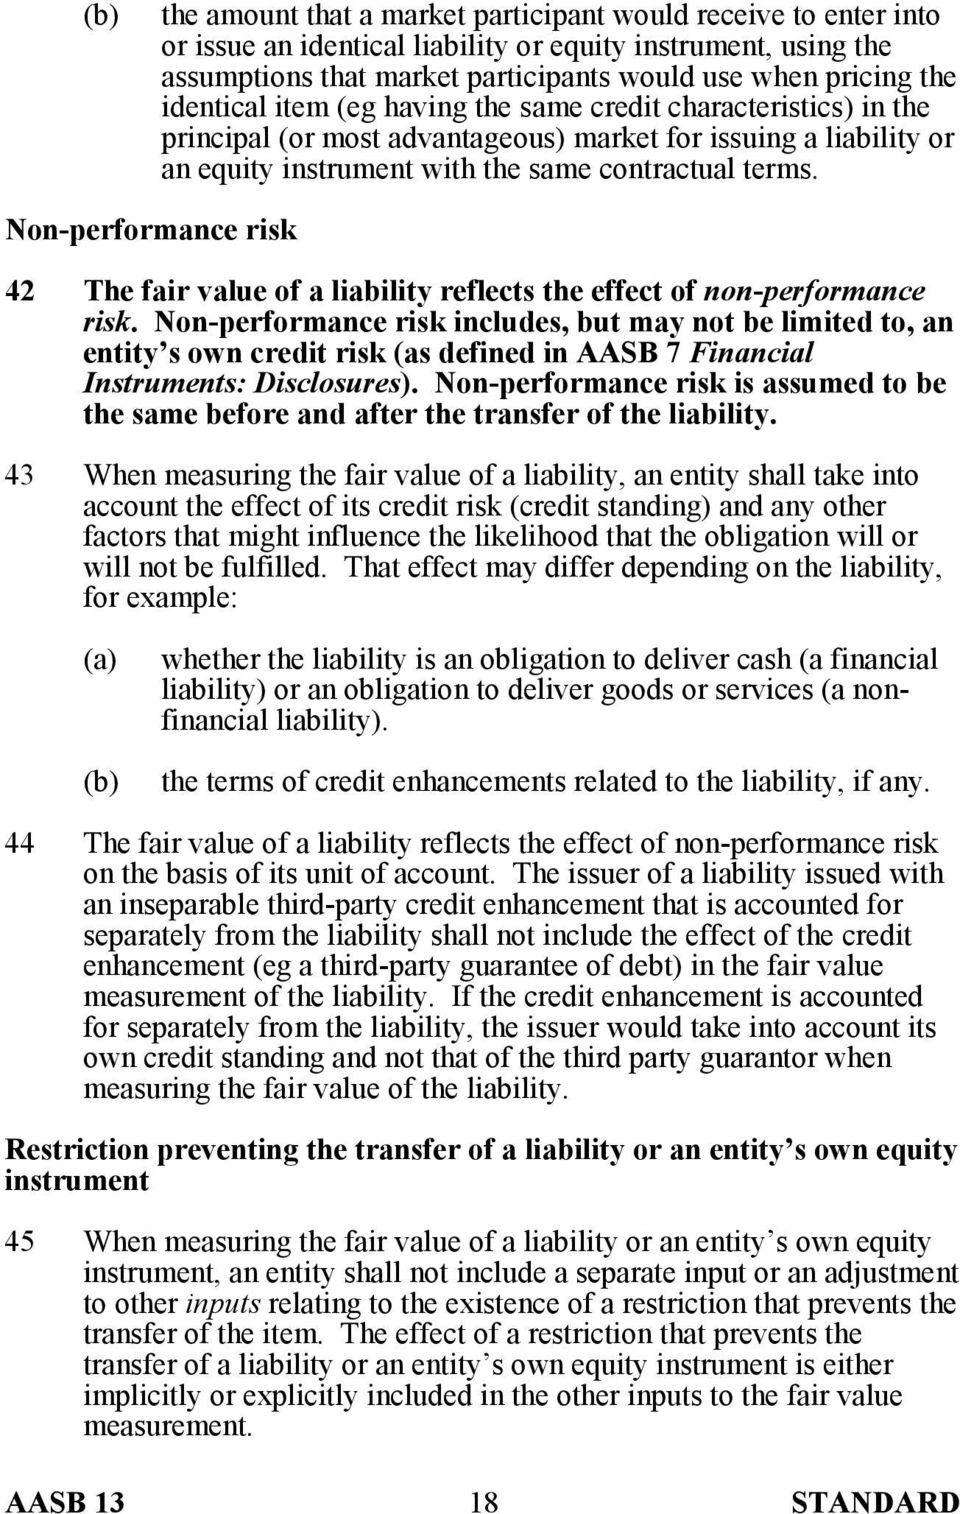 Non-performance risk 42 The fair value of a liability reflects the effect of non-performance risk.